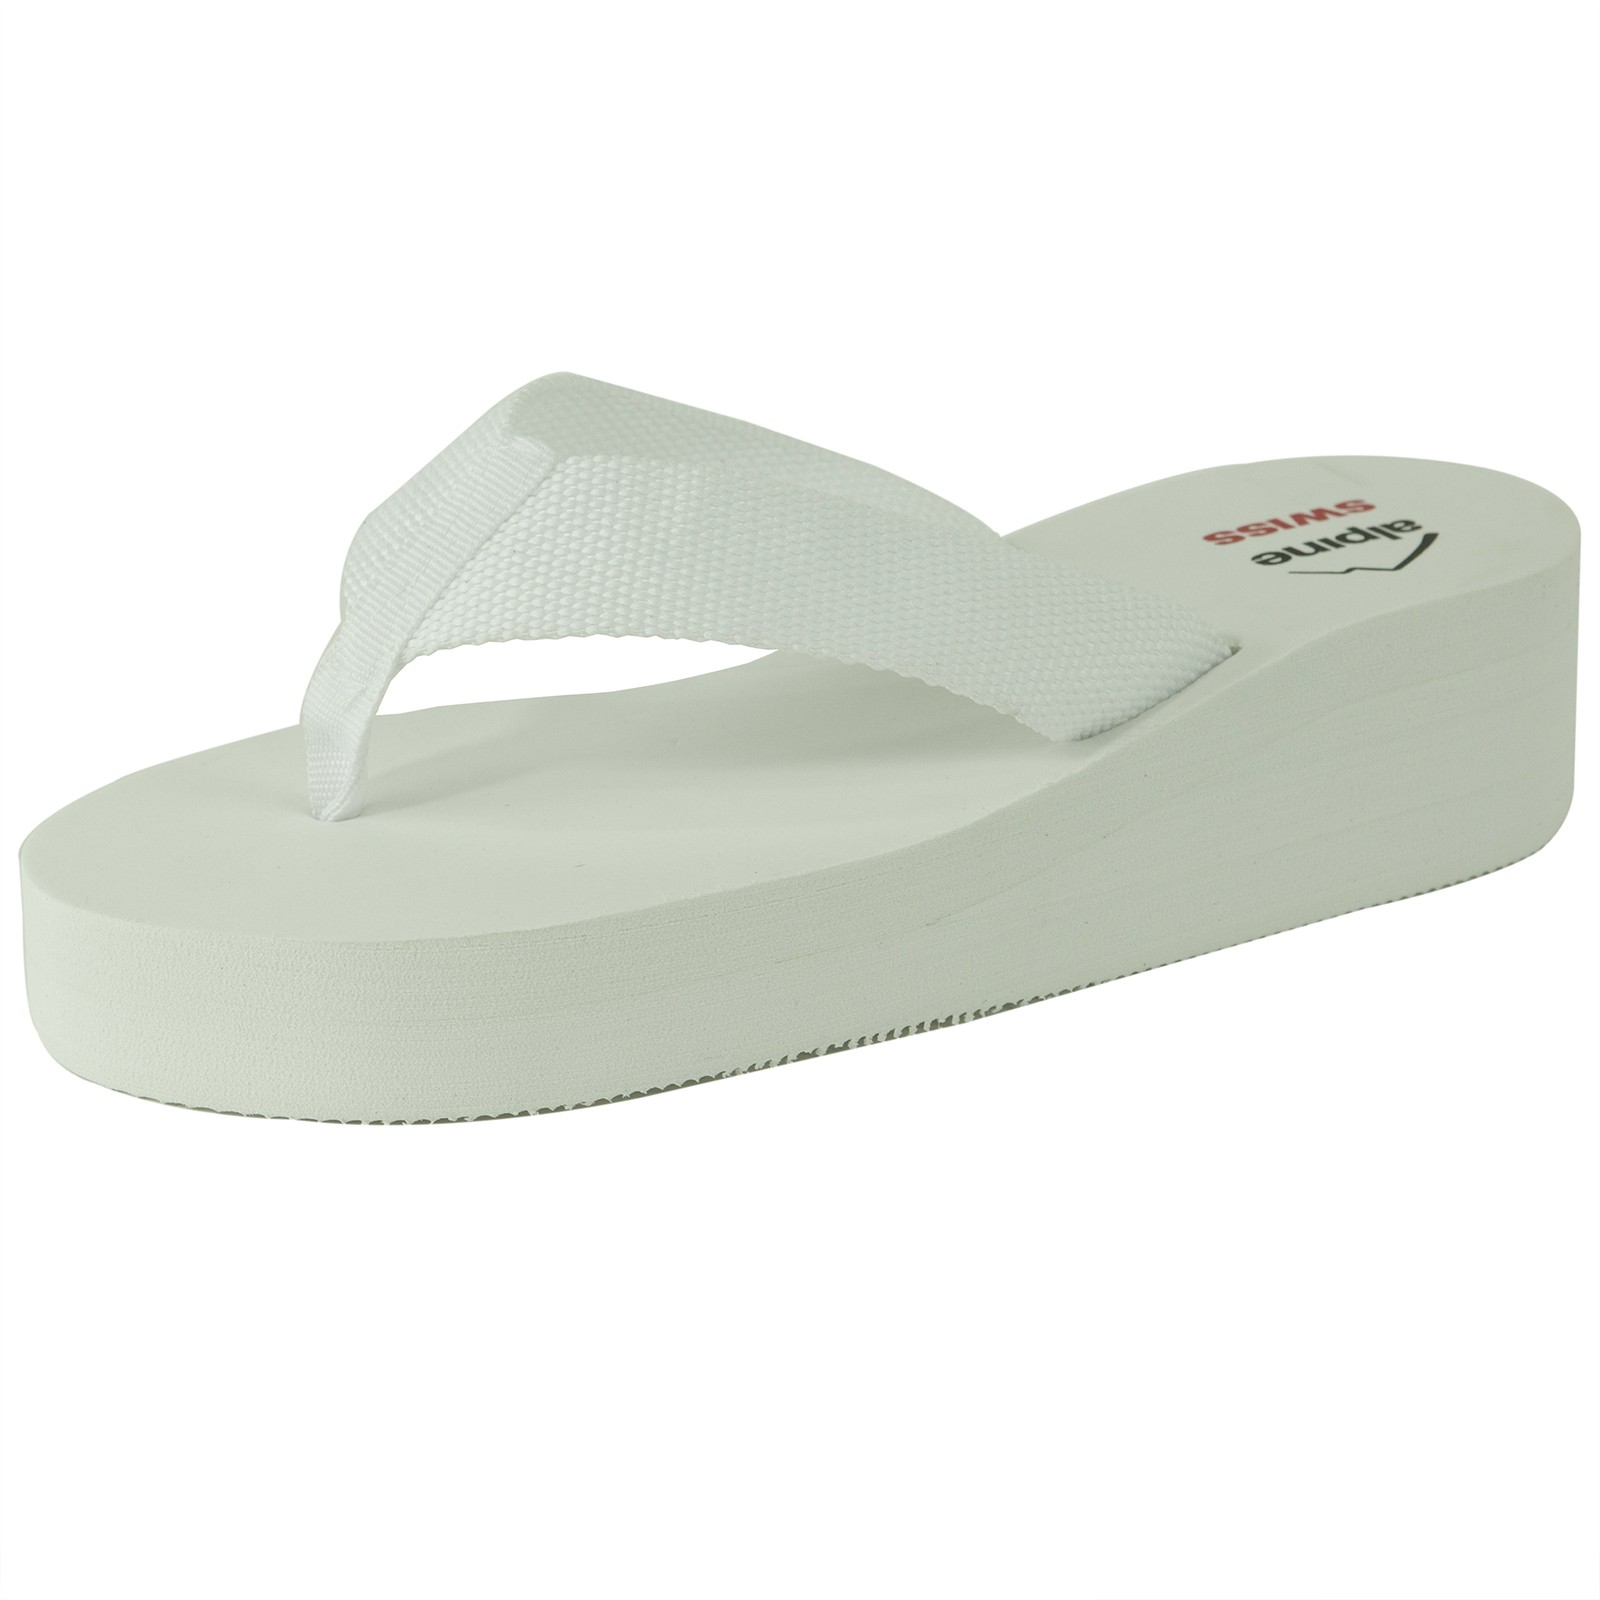 Wedge Slippers Women S Shoes